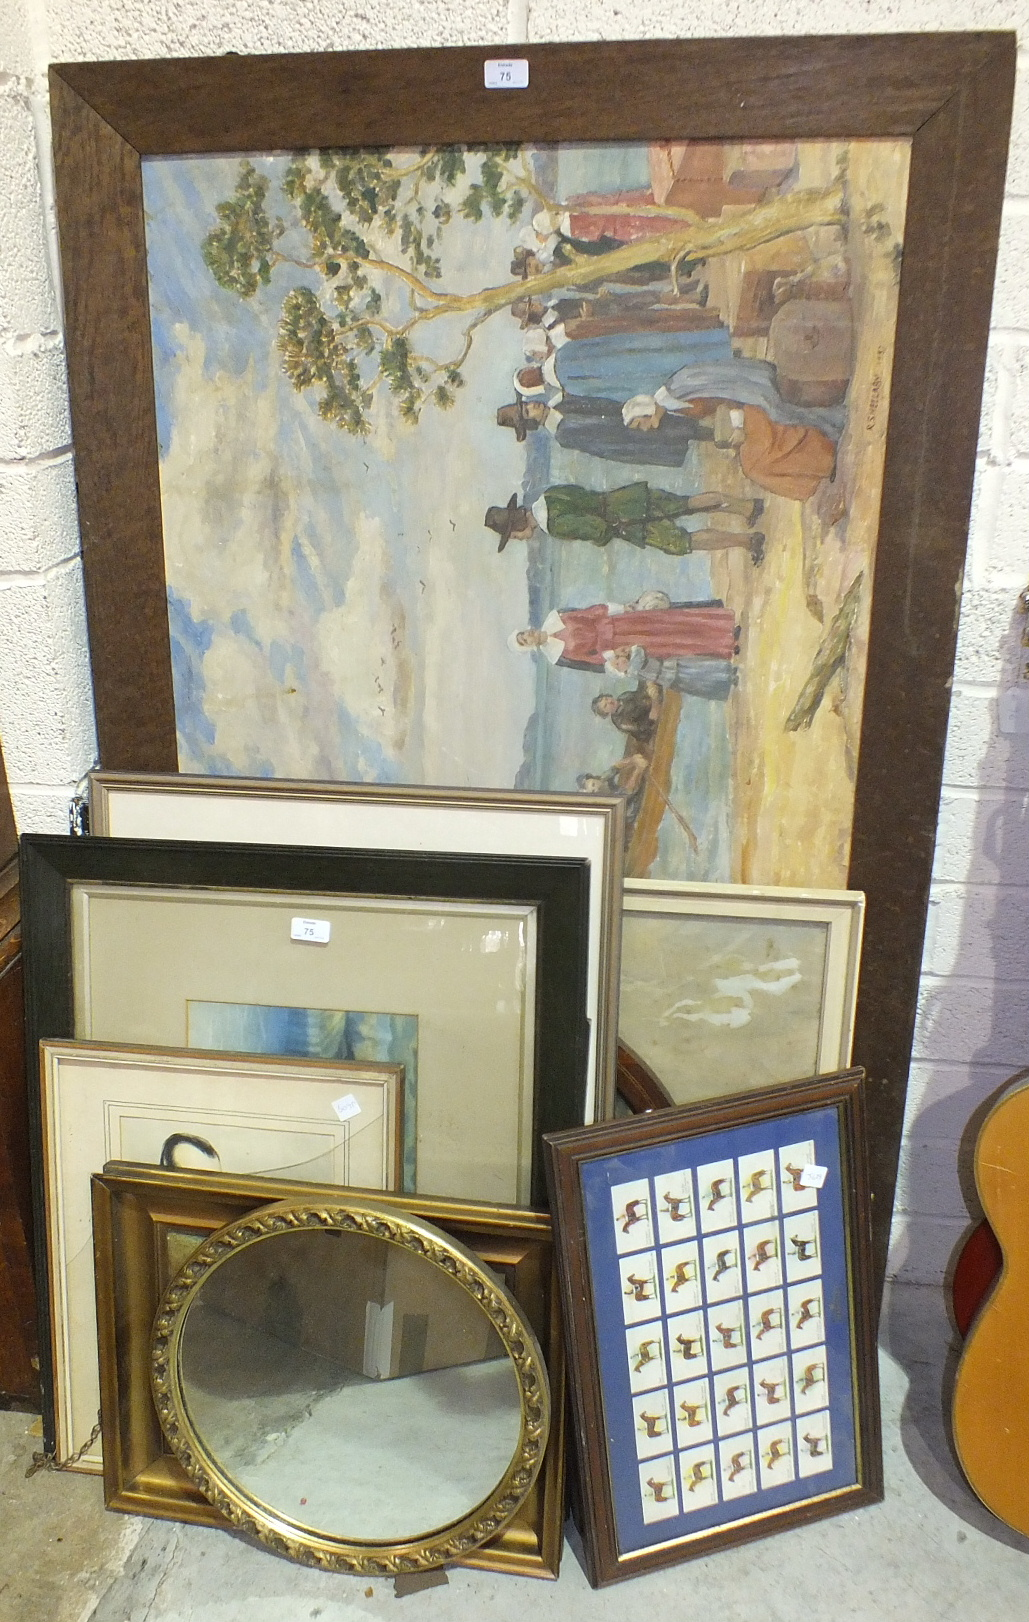 Lot 75 - A collection of watercolours and prints and two wall mirrors.